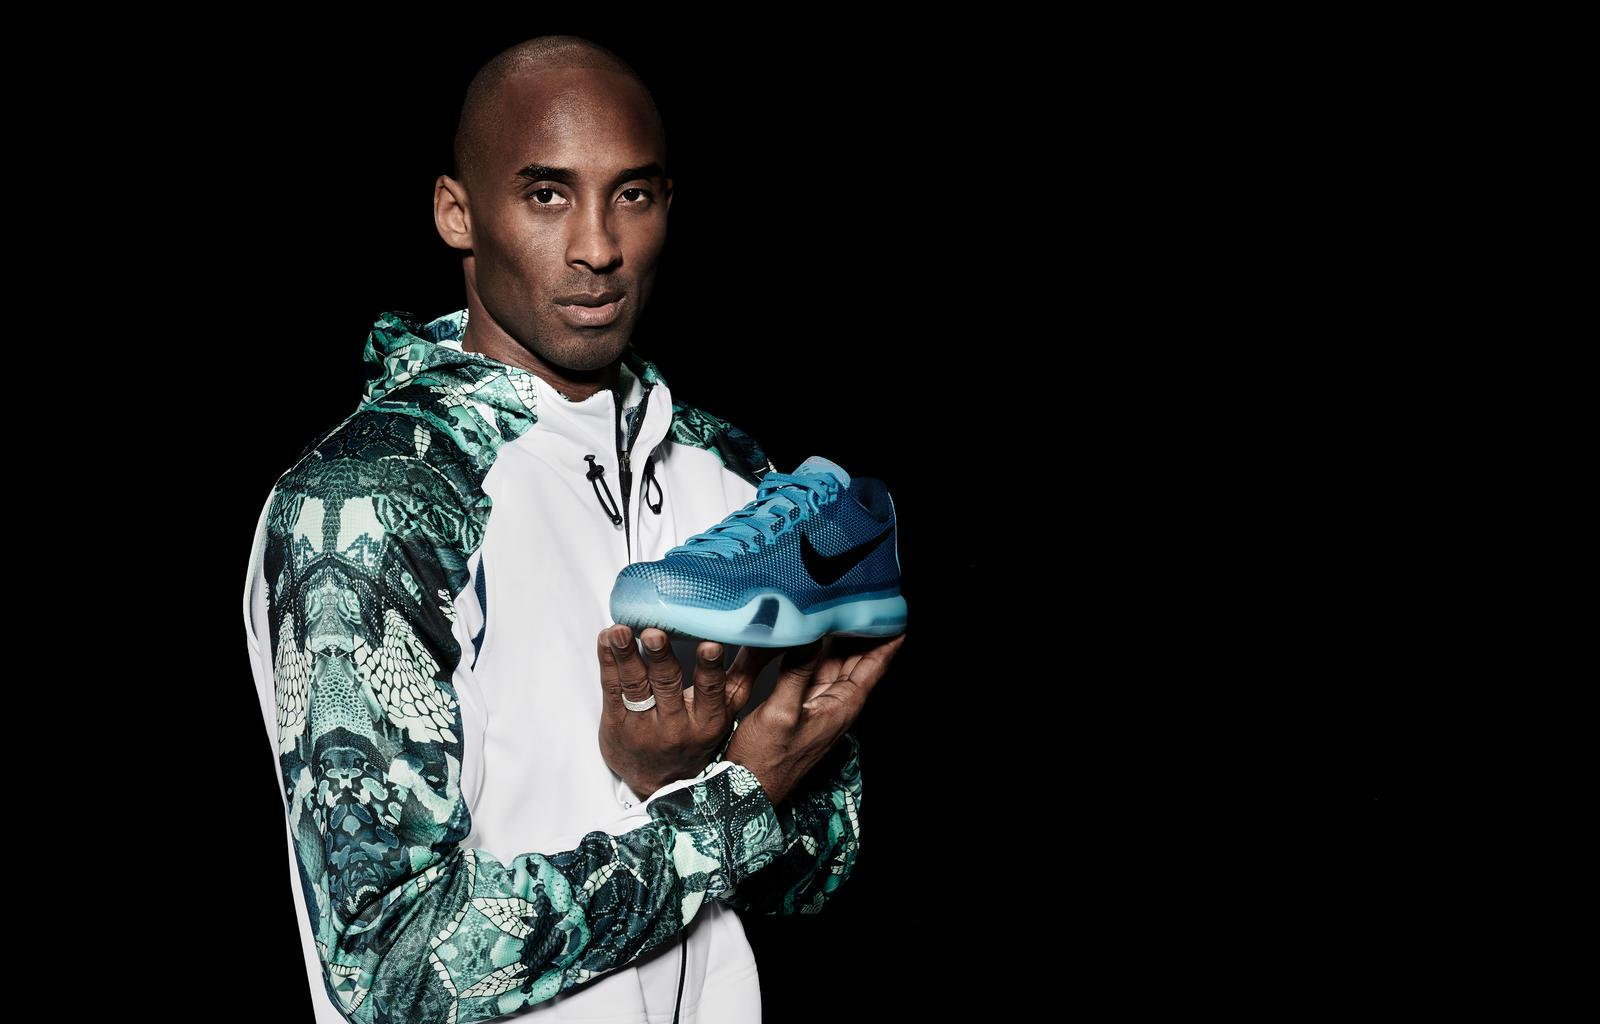 Nike Denies Suspending Online Sale Of Kobe Bryant Products, Trying To Control Resellers